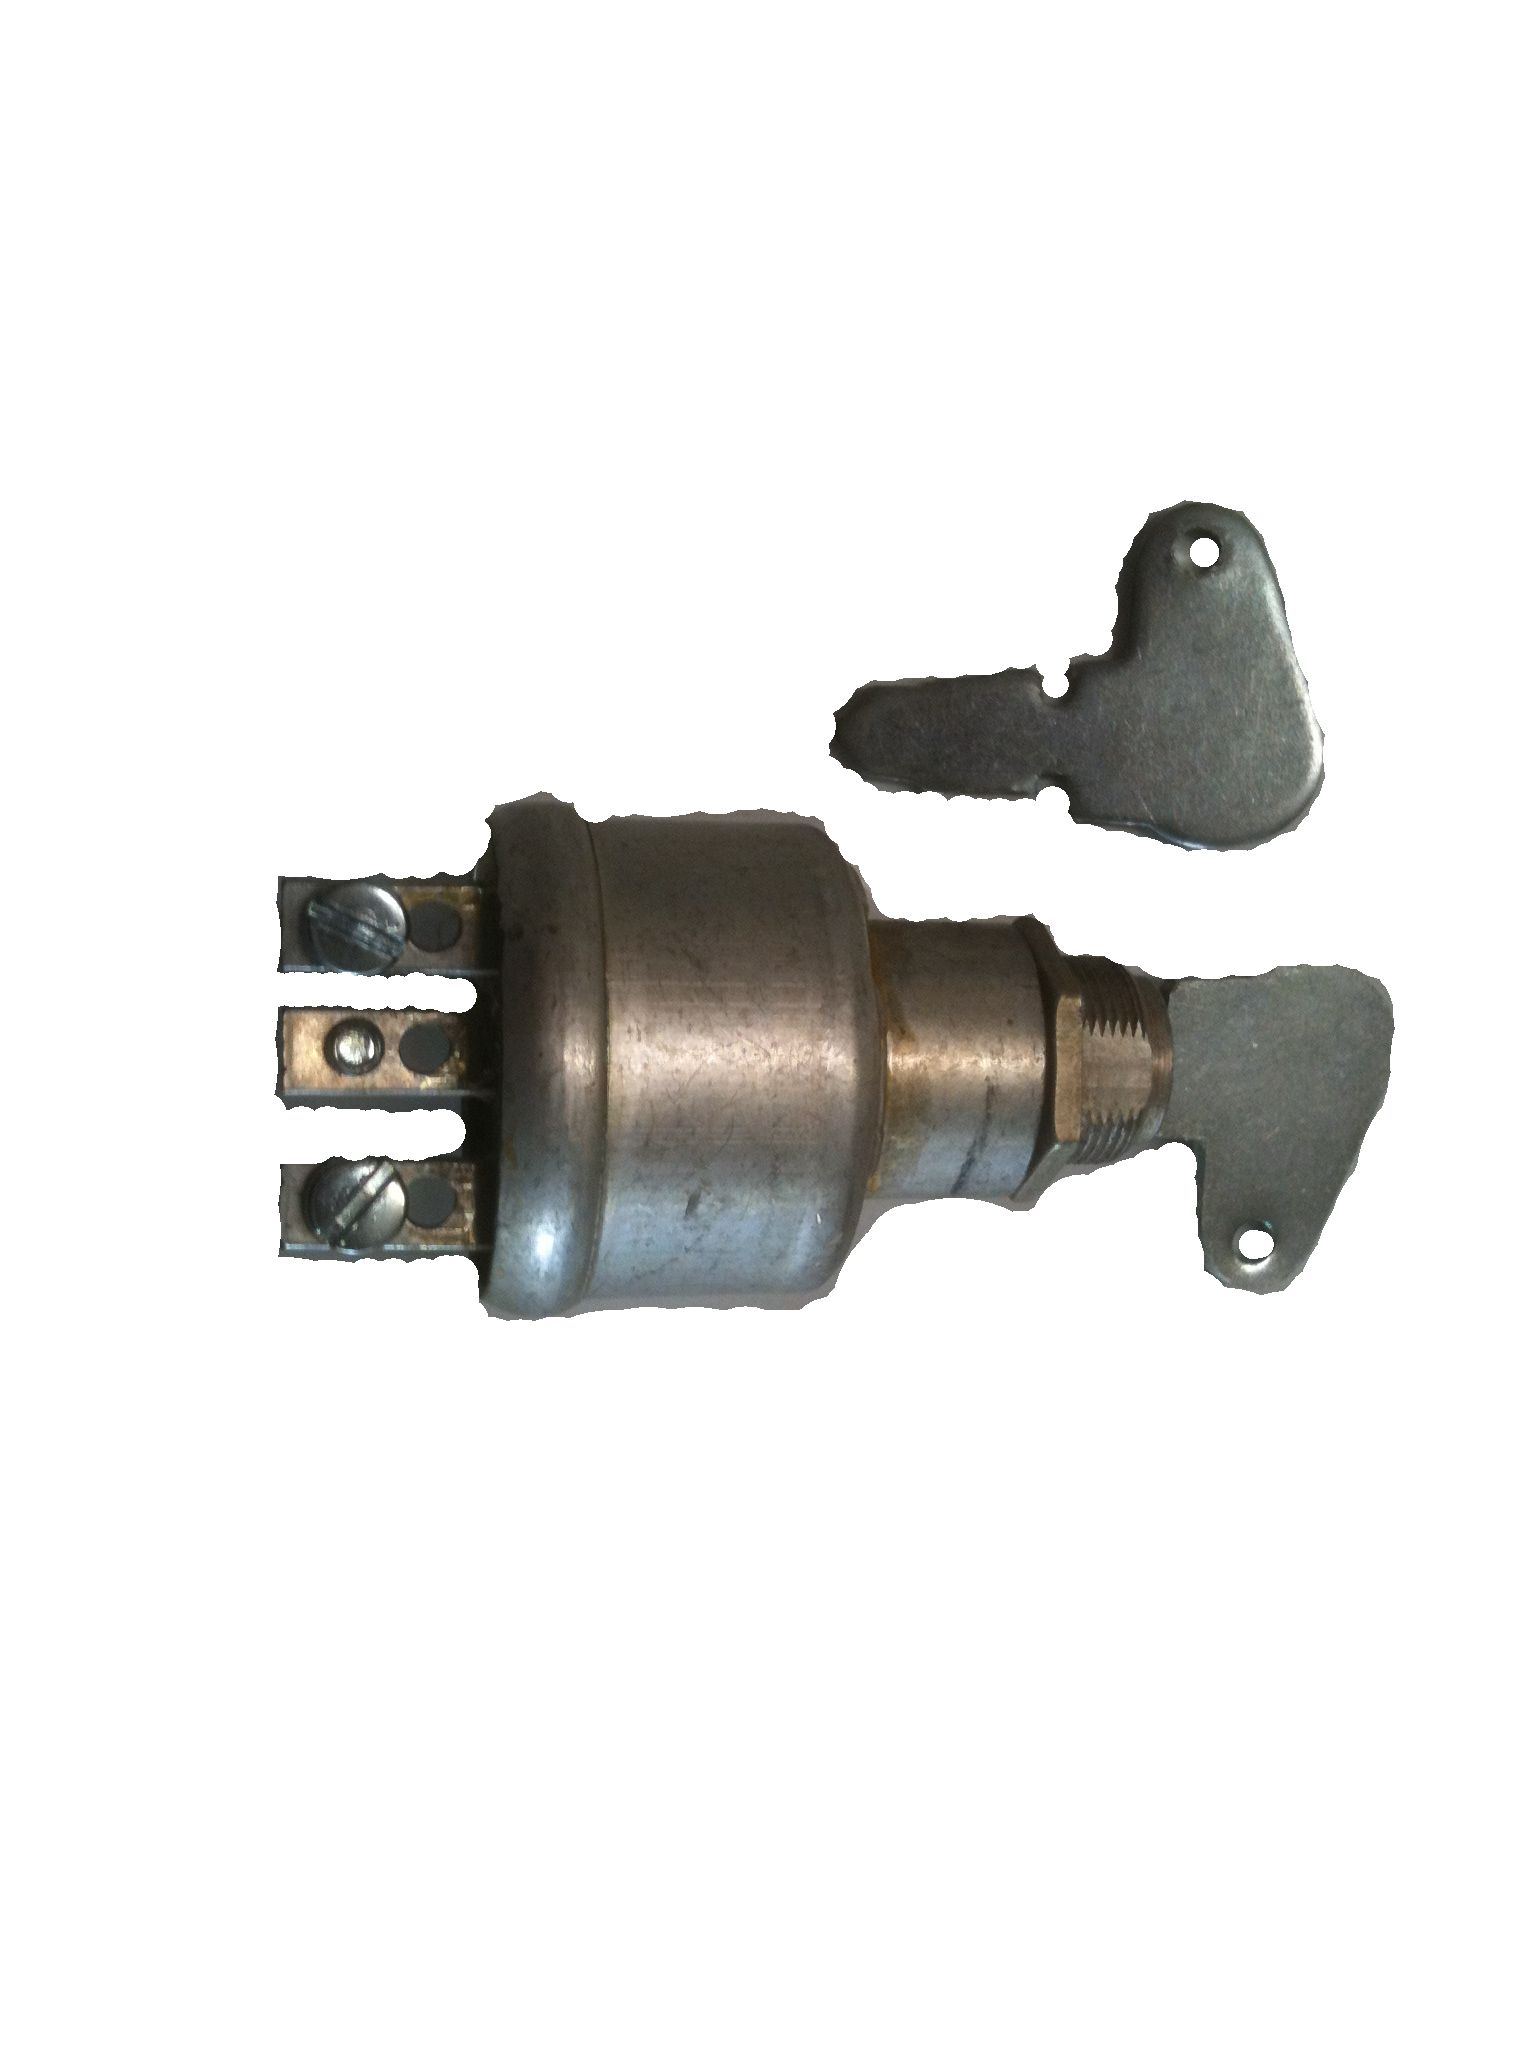 SW11-013 - N.O.S. Ignition Switch